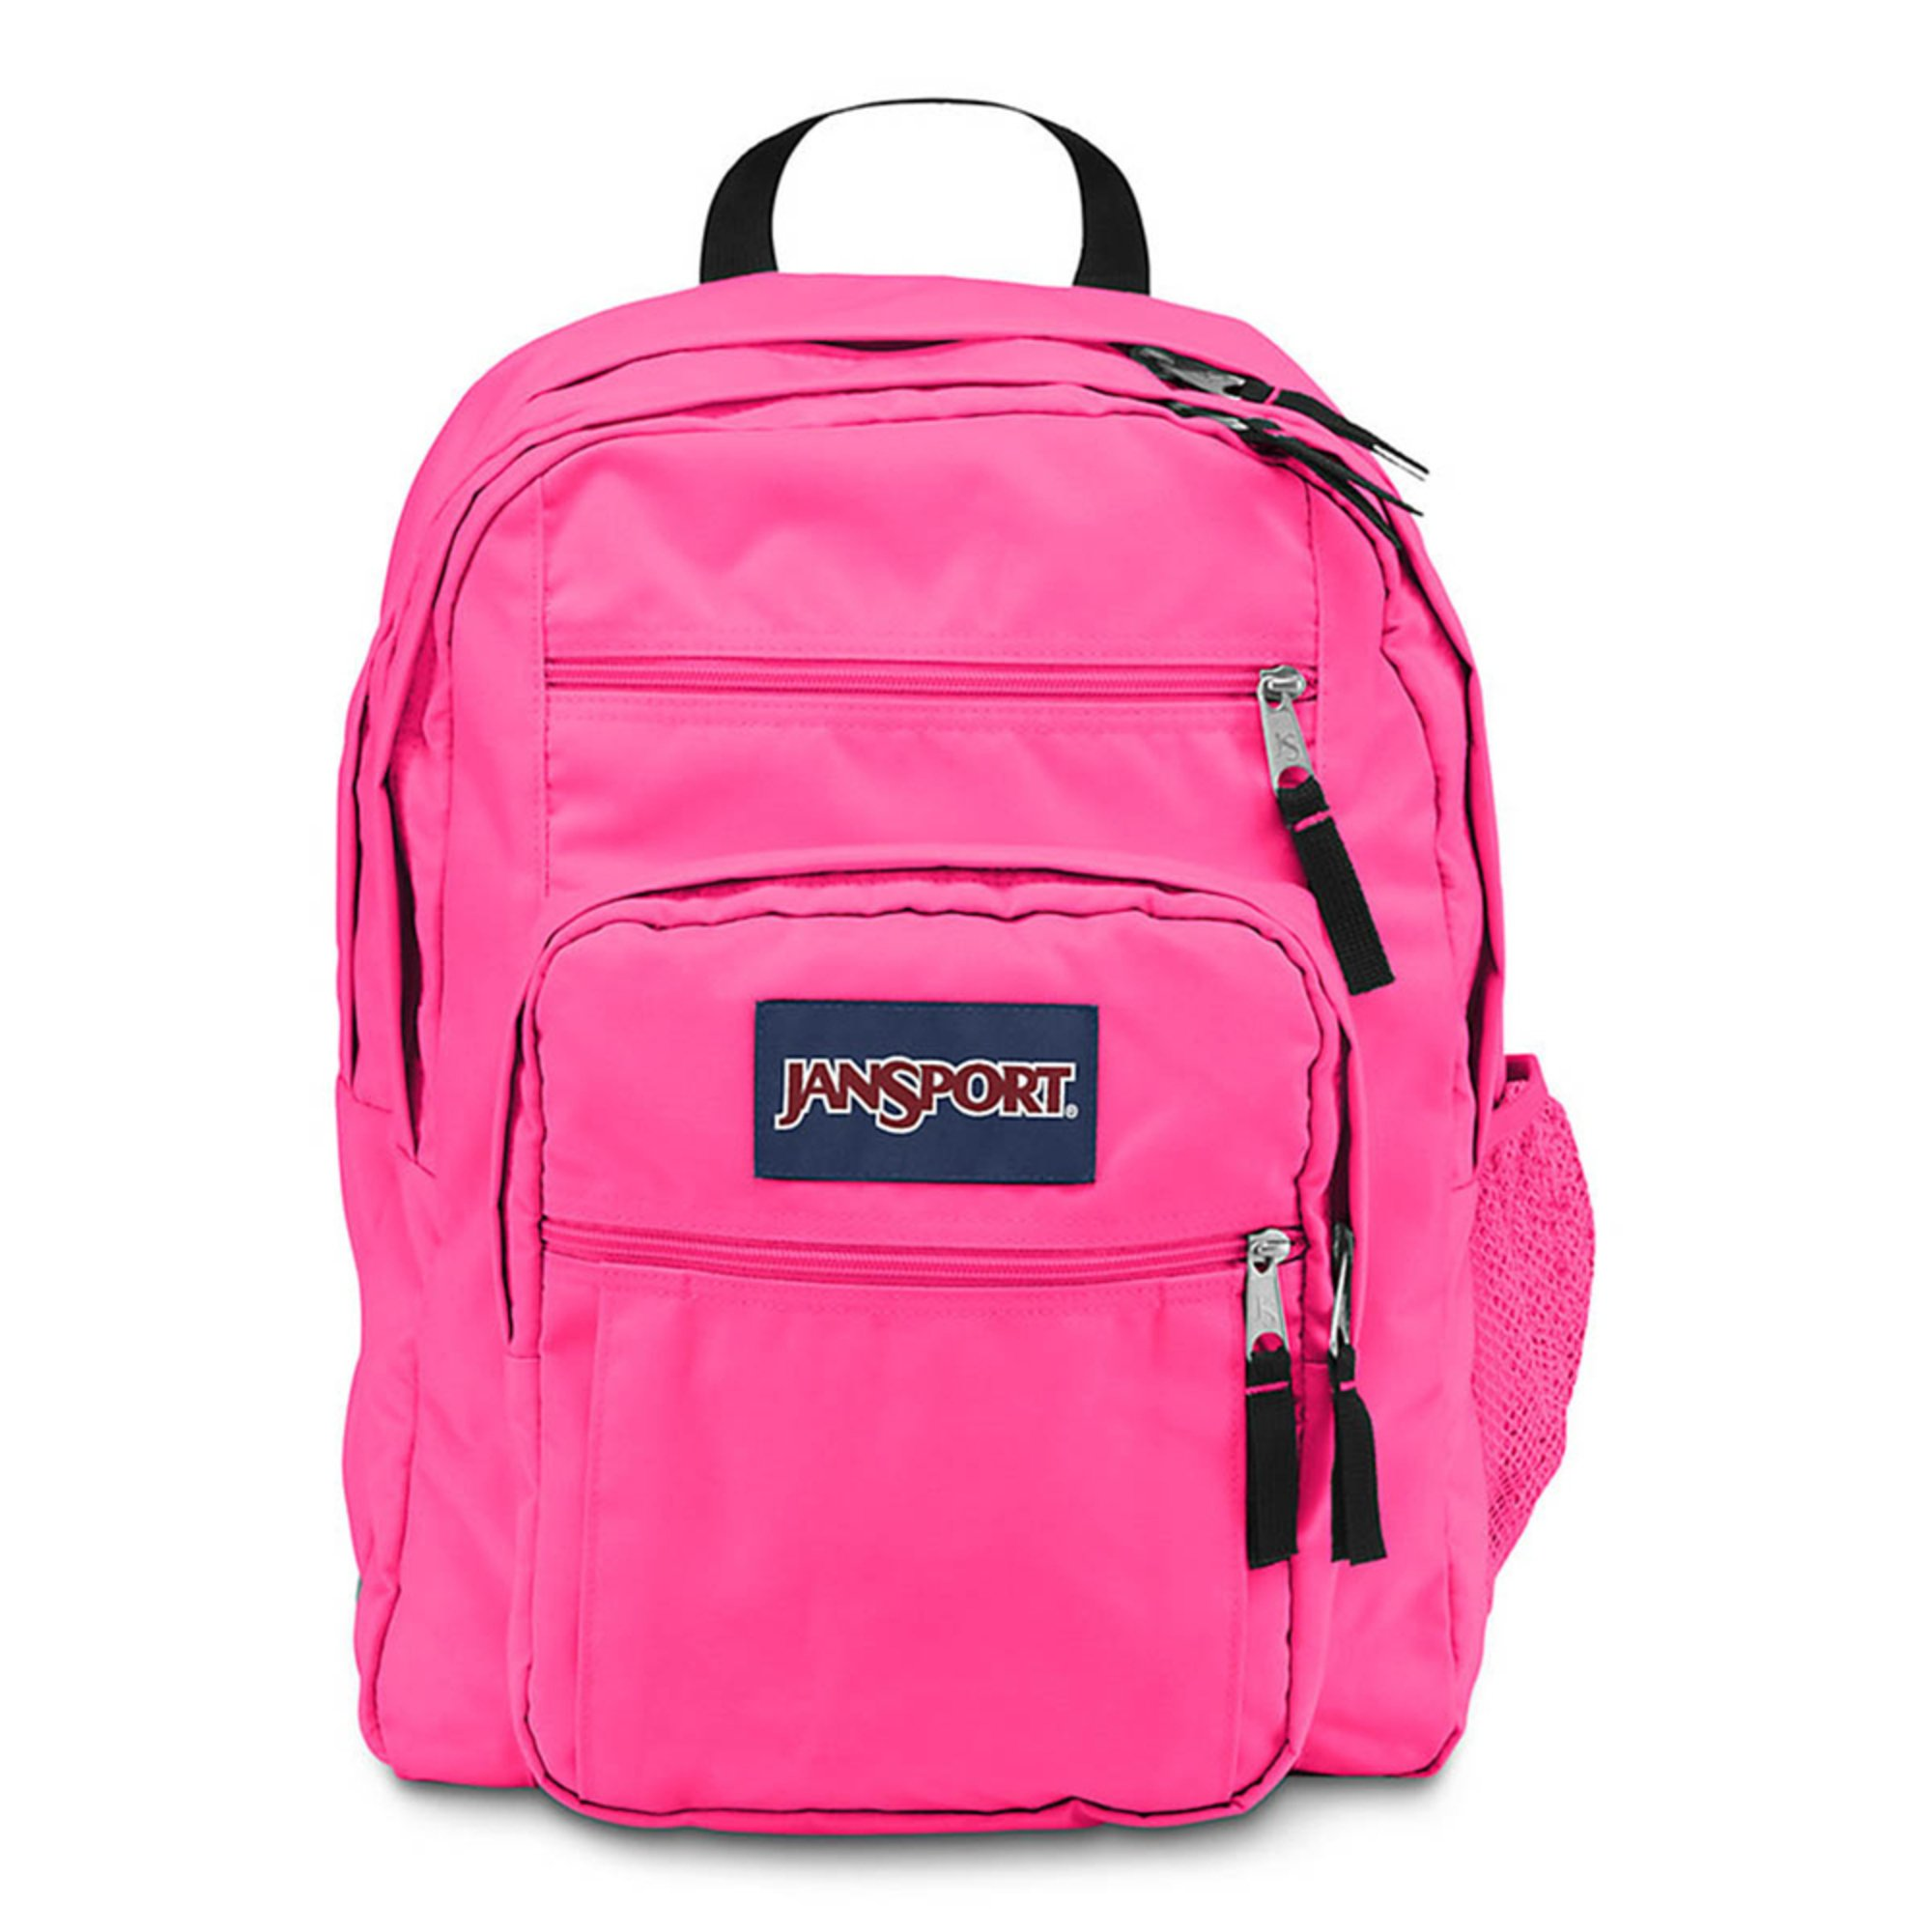 jansport backpack clearance Backpack Tools